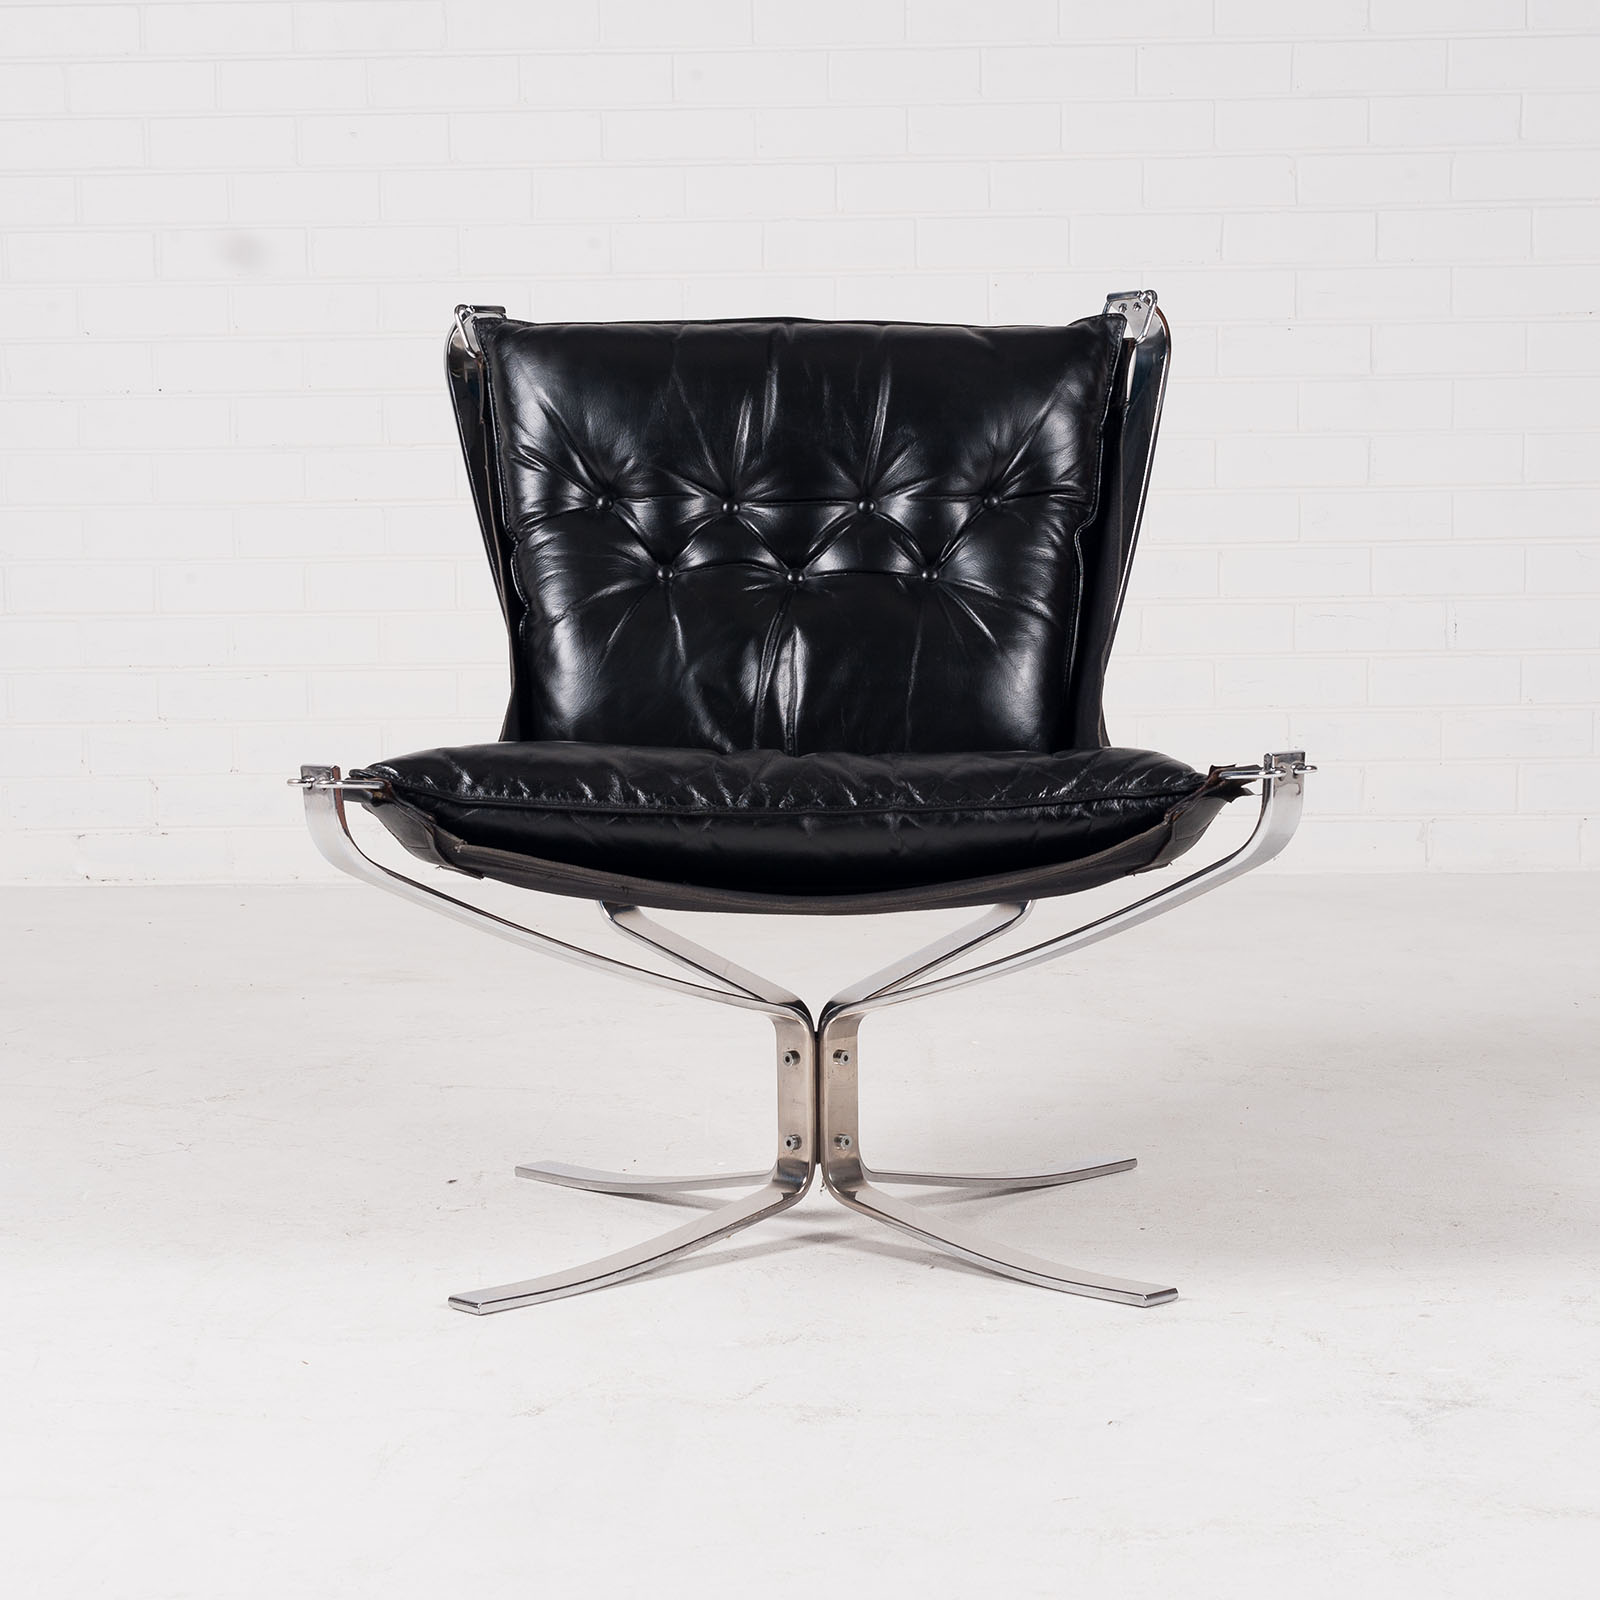 Low Back Falcon Armchair By Sigurd Resell For Vatne Mobler In Black Leather With Chrome Frame 1960s Denmark 02